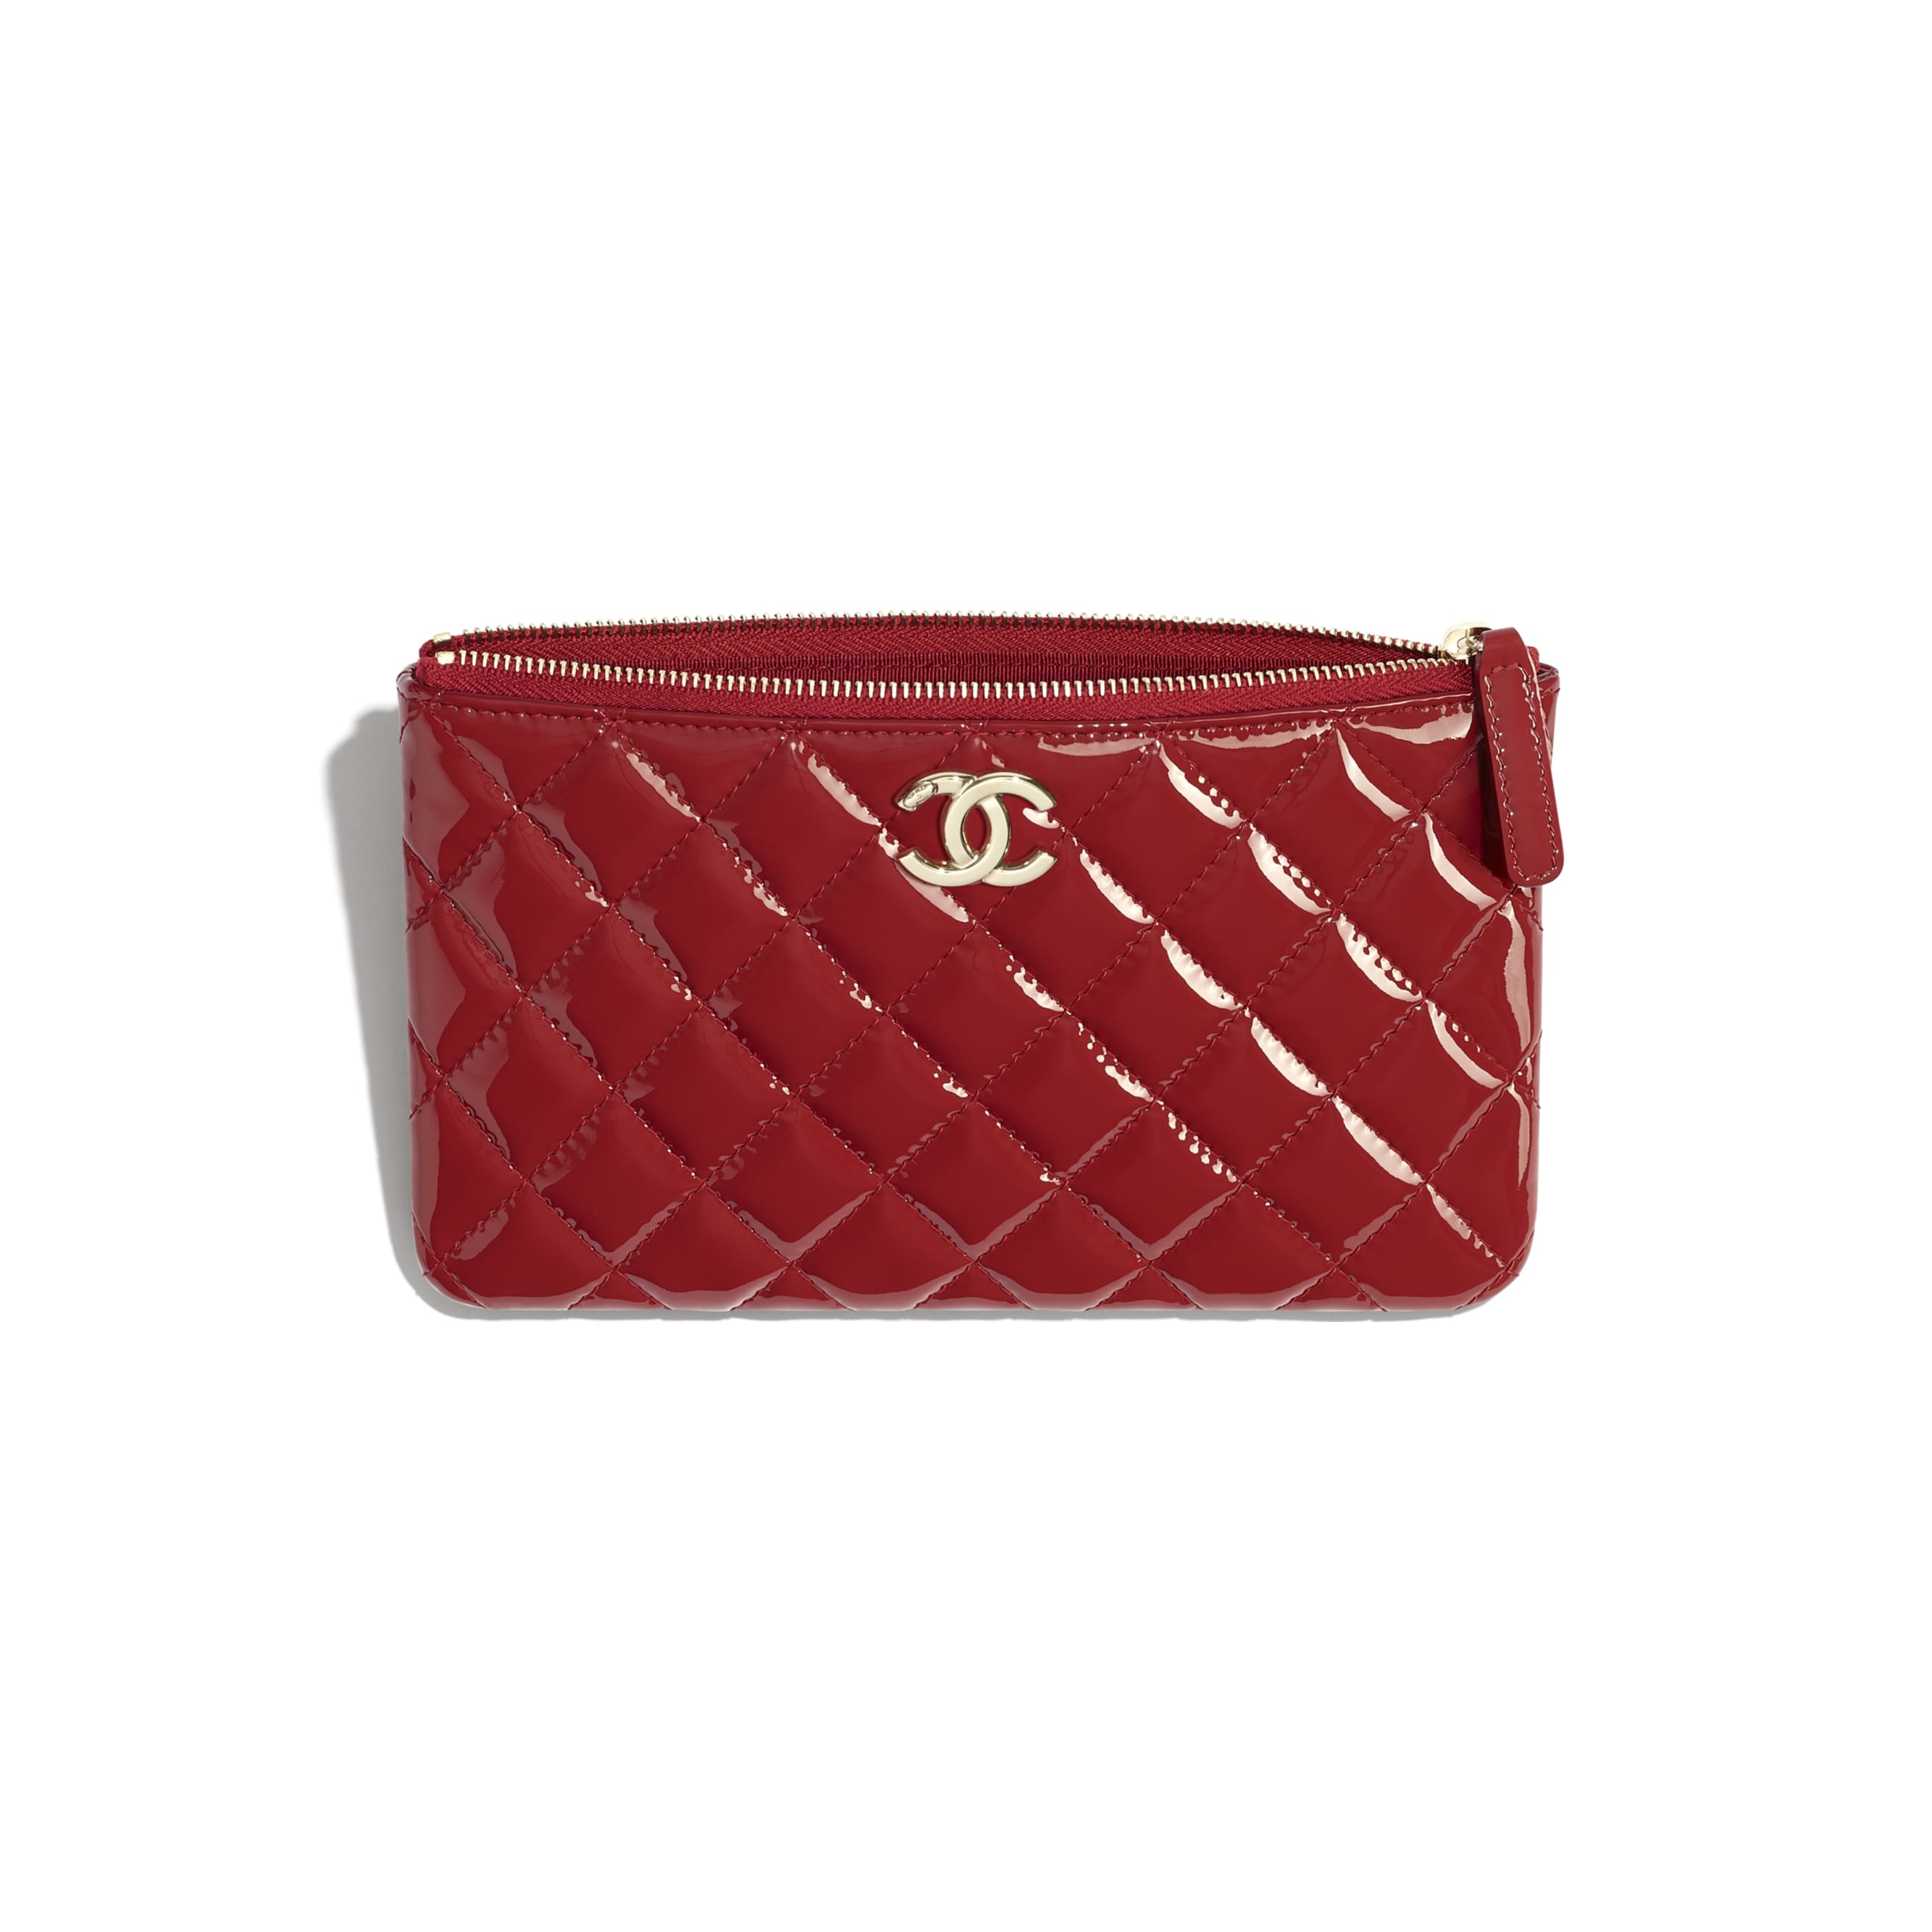 Small Pouch - Red - Patent Calfskin, Lambskin & Gold-Tone Metal - CHANEL - Other view - see standard sized version